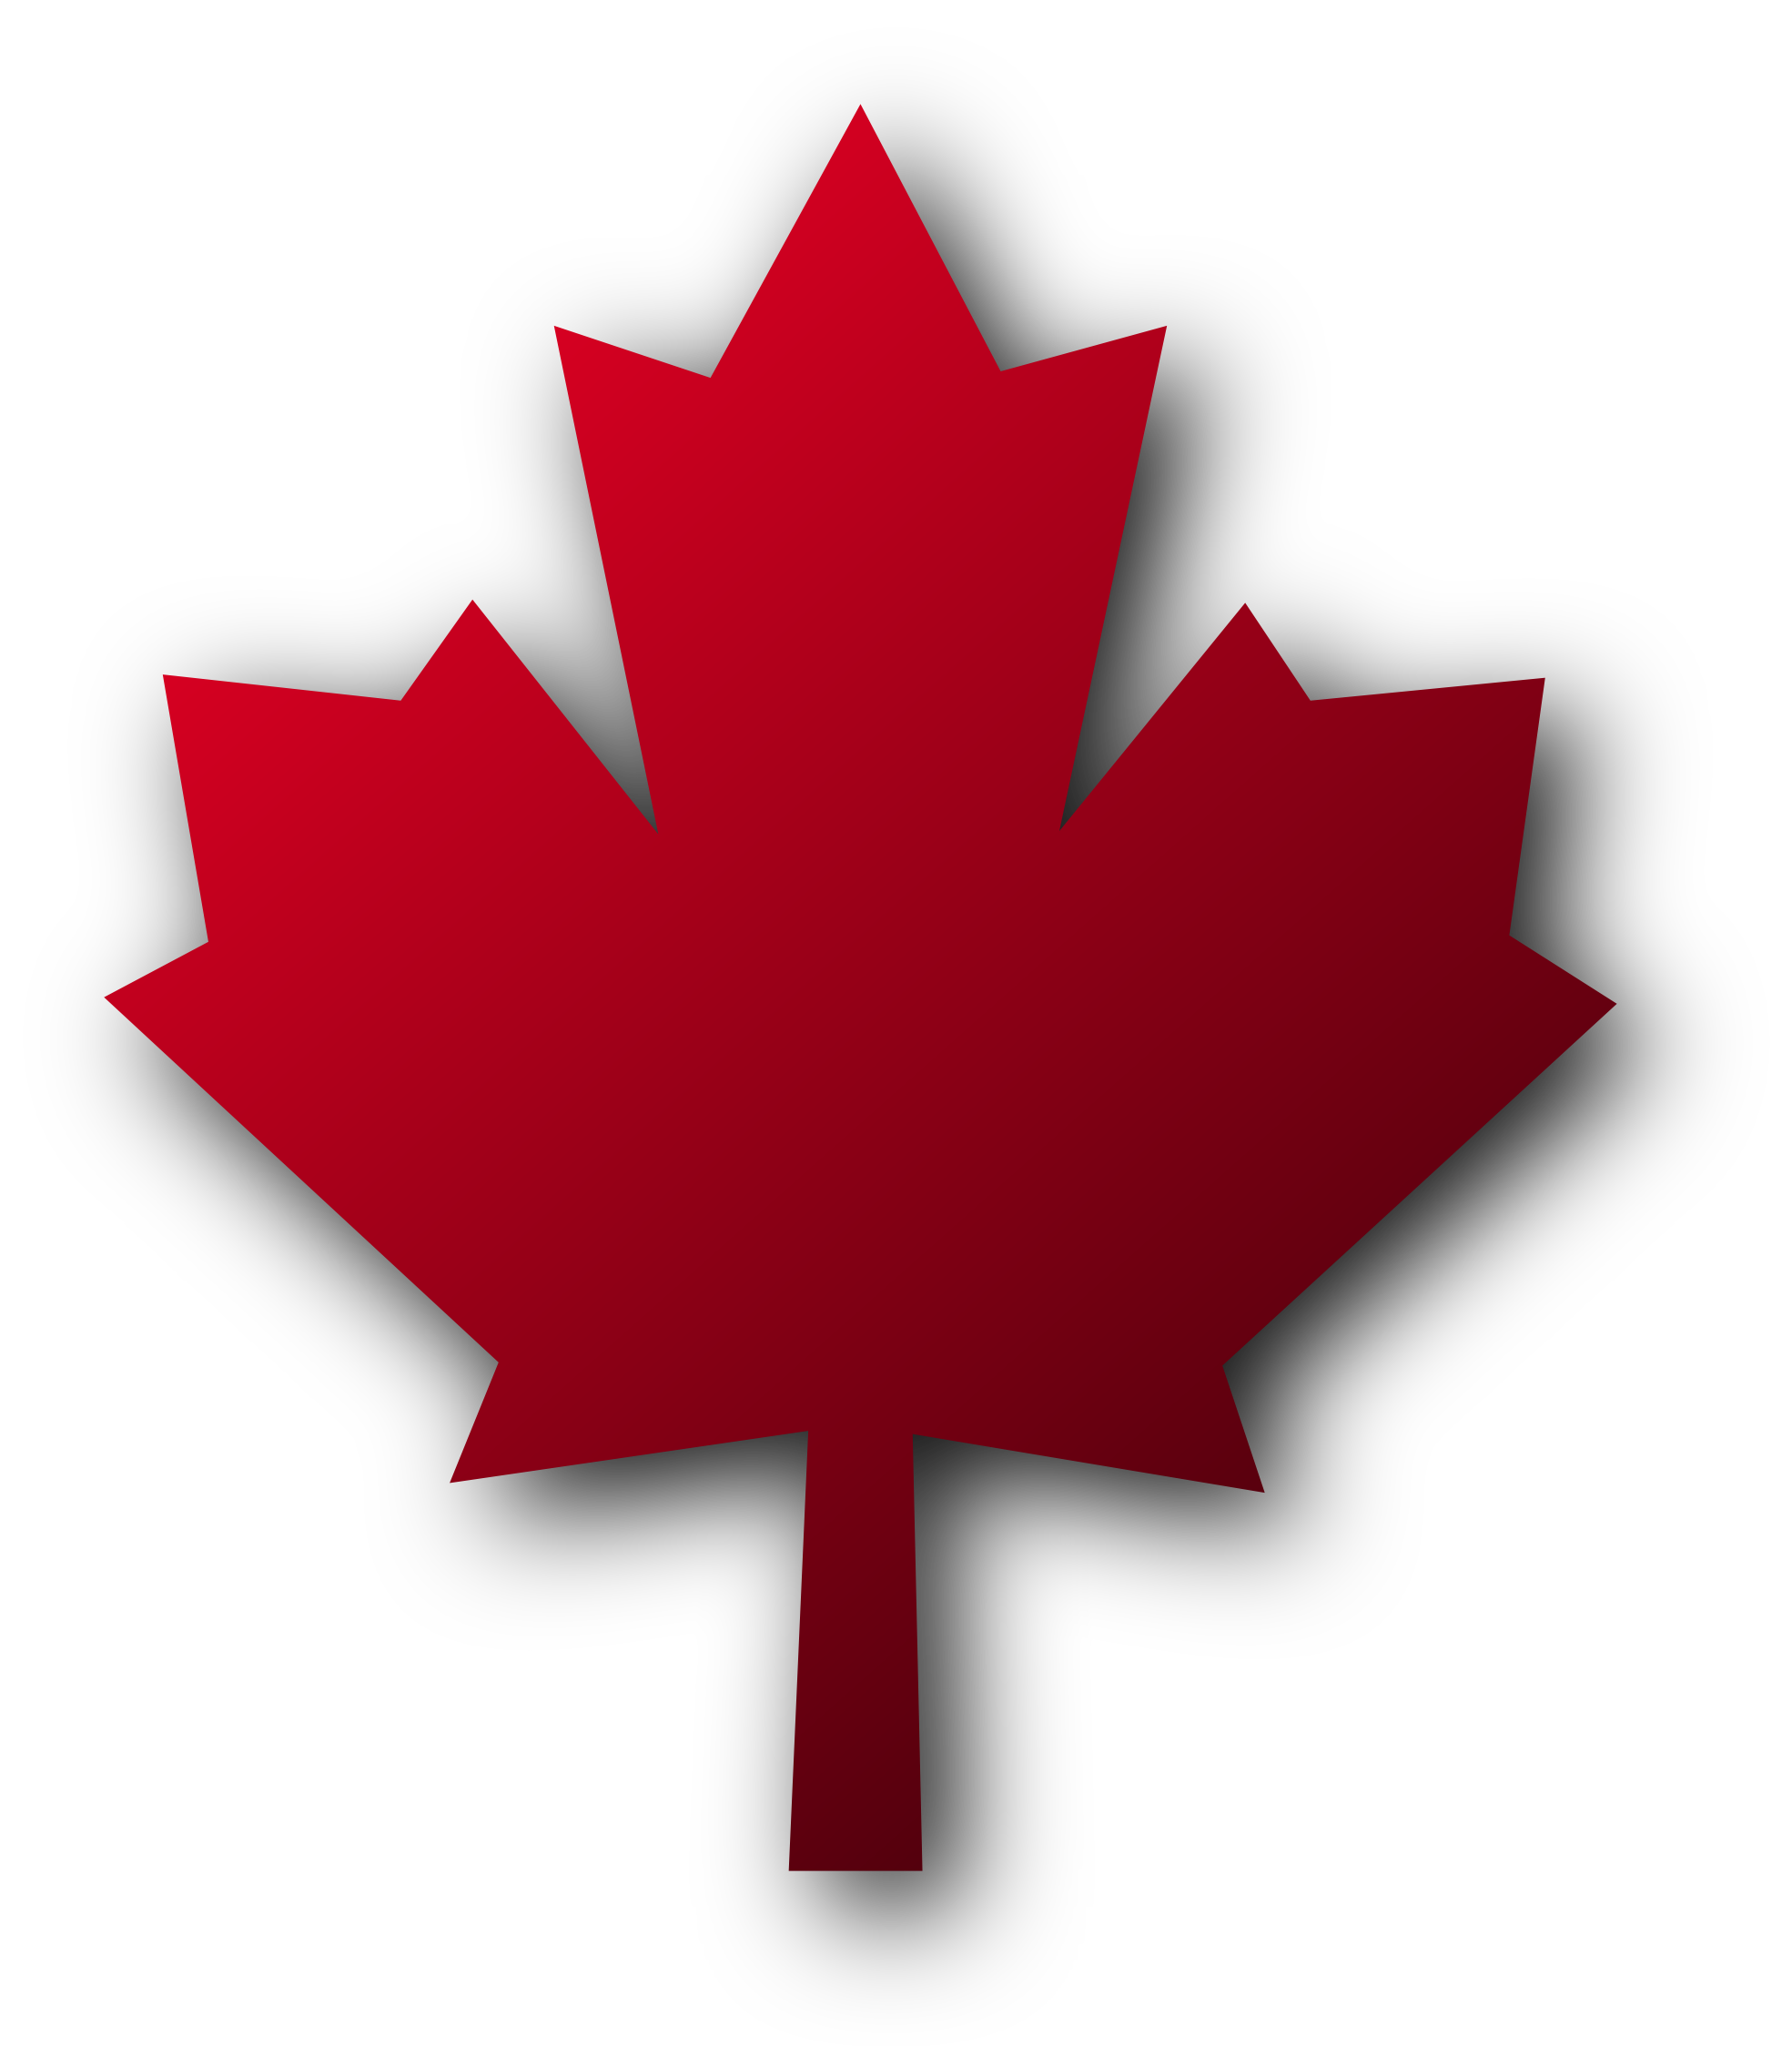 Red Maple Leaf Clip Art.